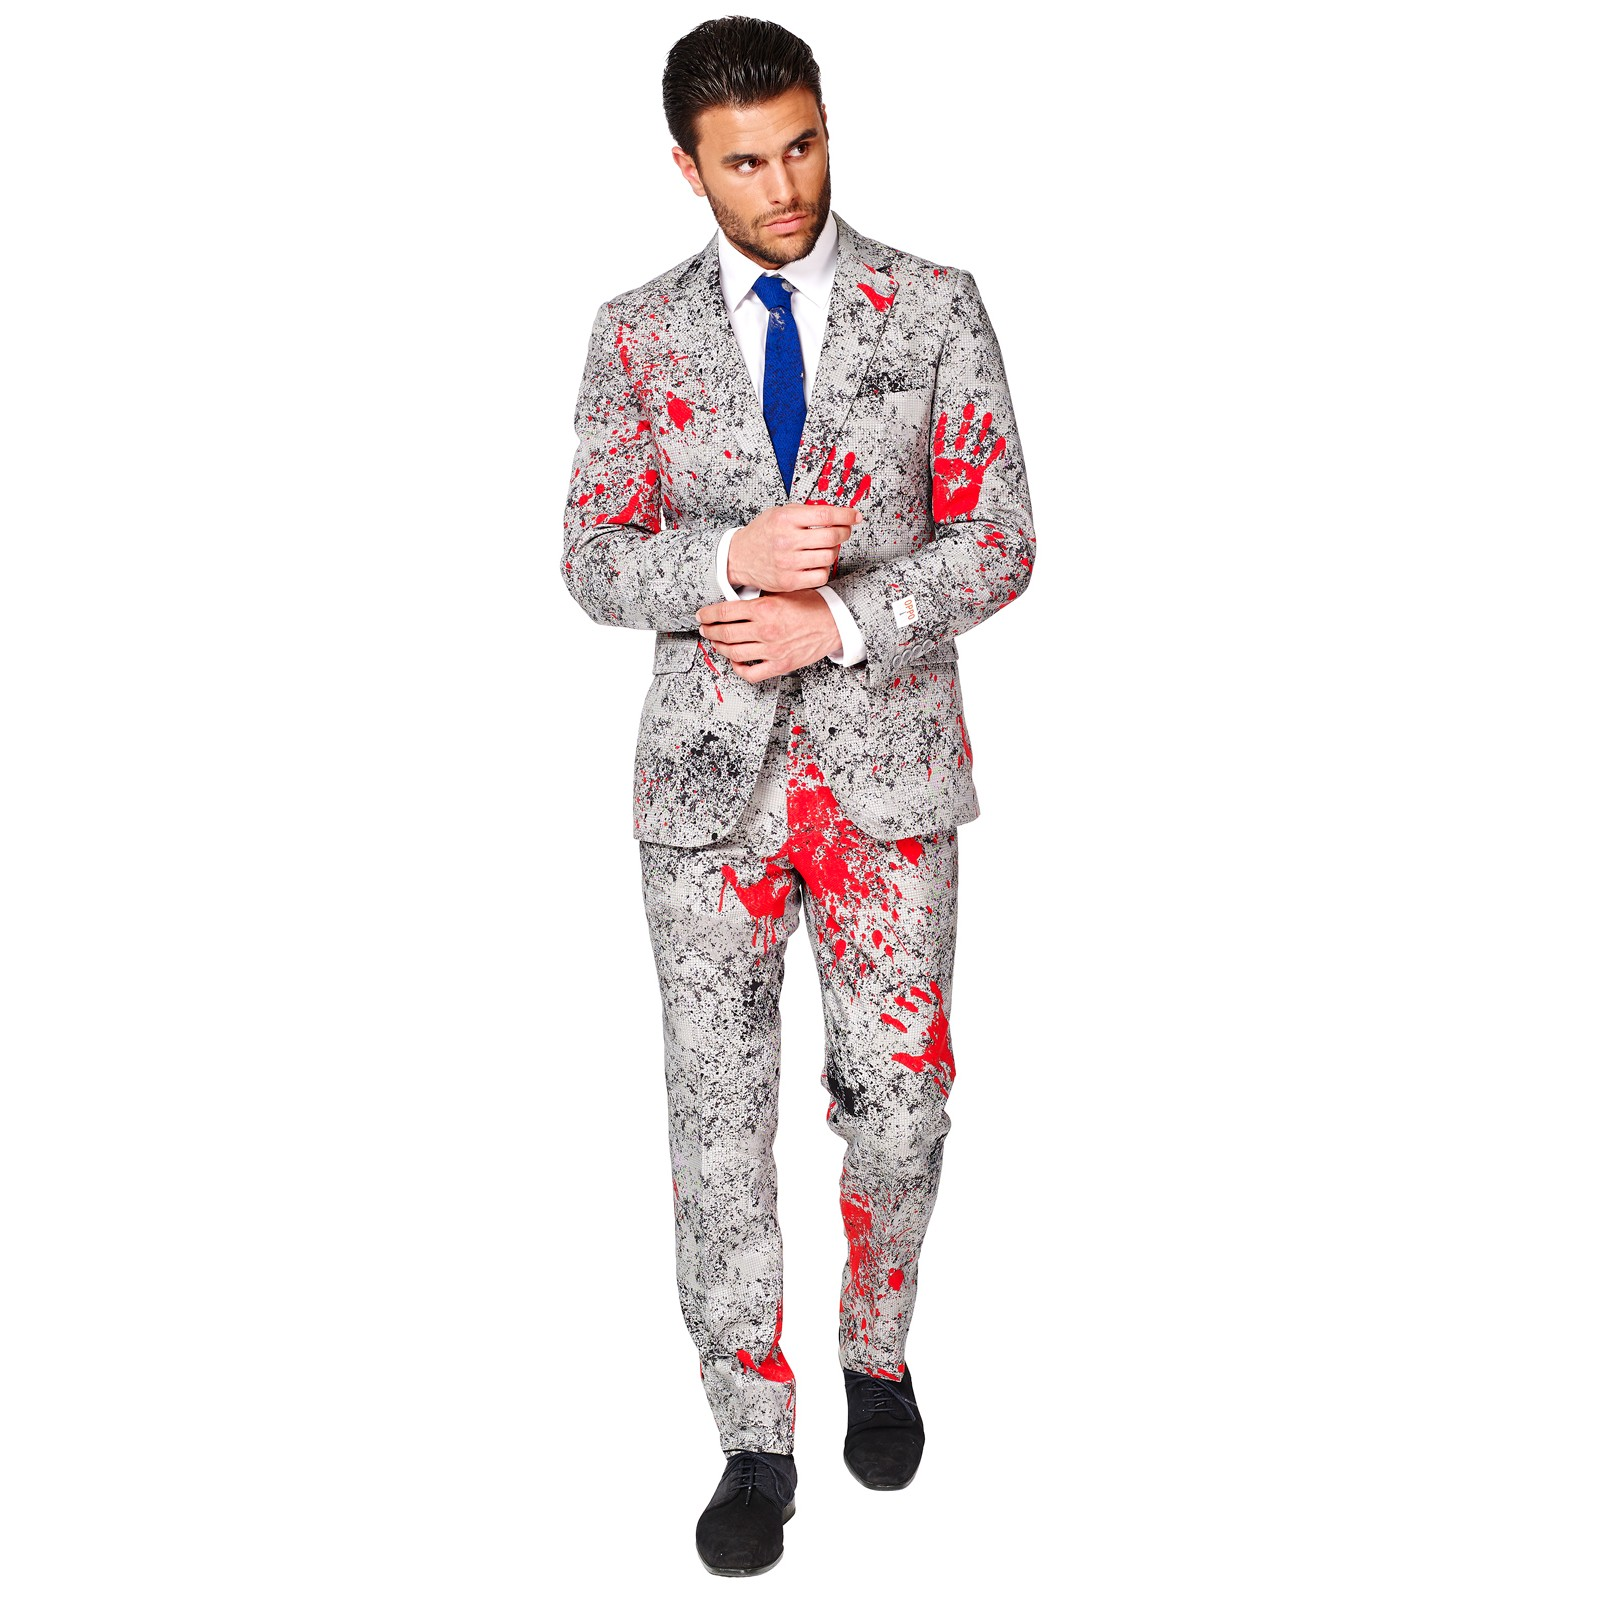 opposuits-mens-mens-opposuits-zombiac-suit-halloween-suits